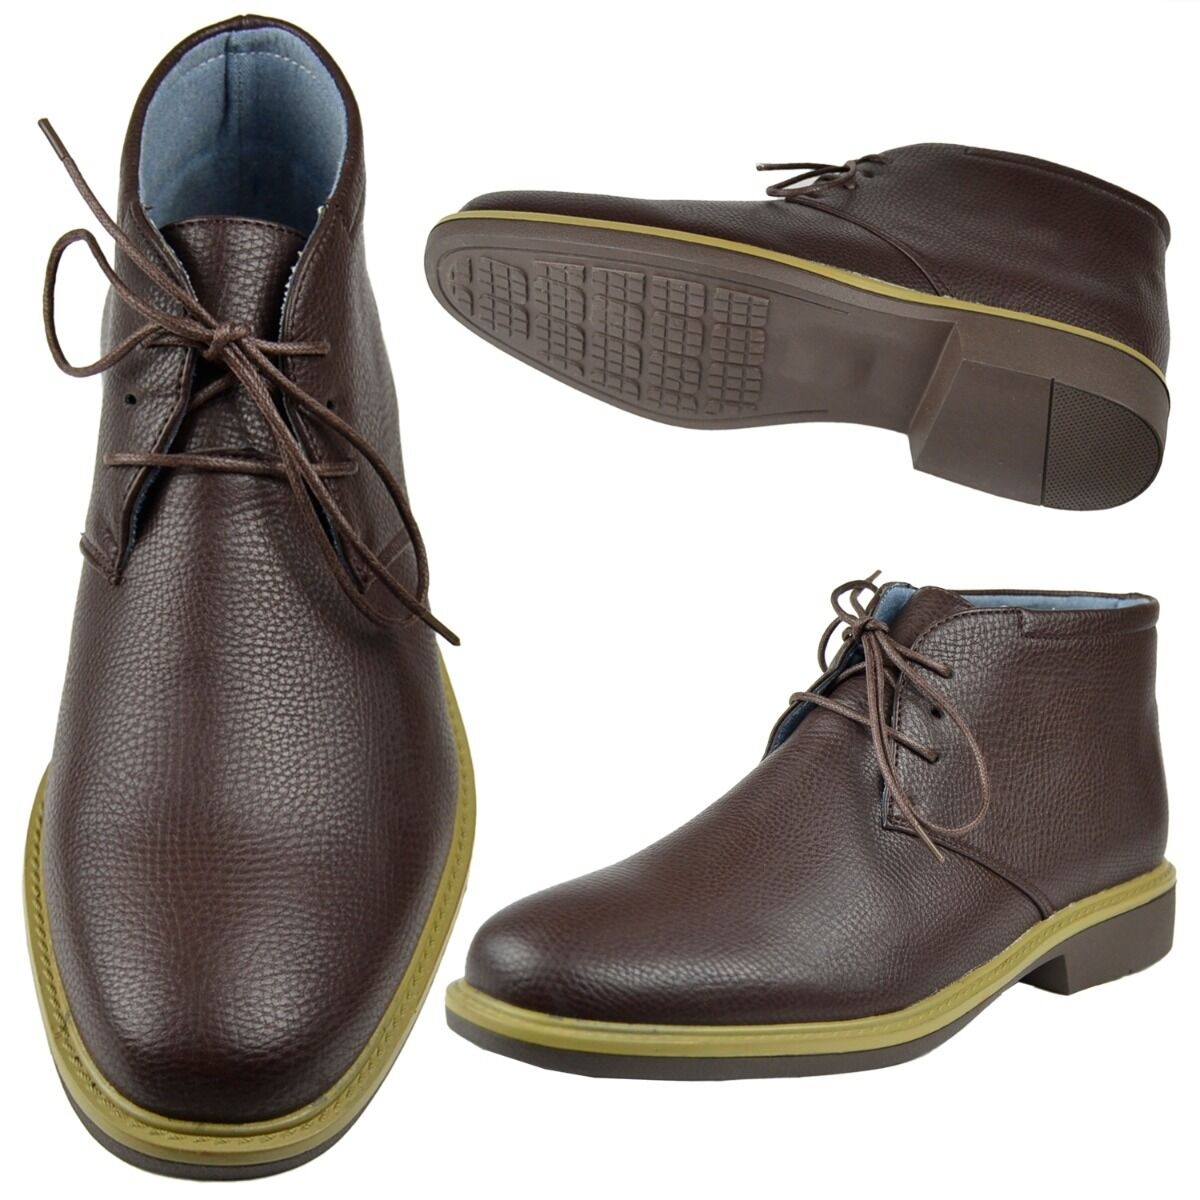 Mens Lace Up High Top Chukka Ankle Booties Faux Leather Casual Oxfords shoes